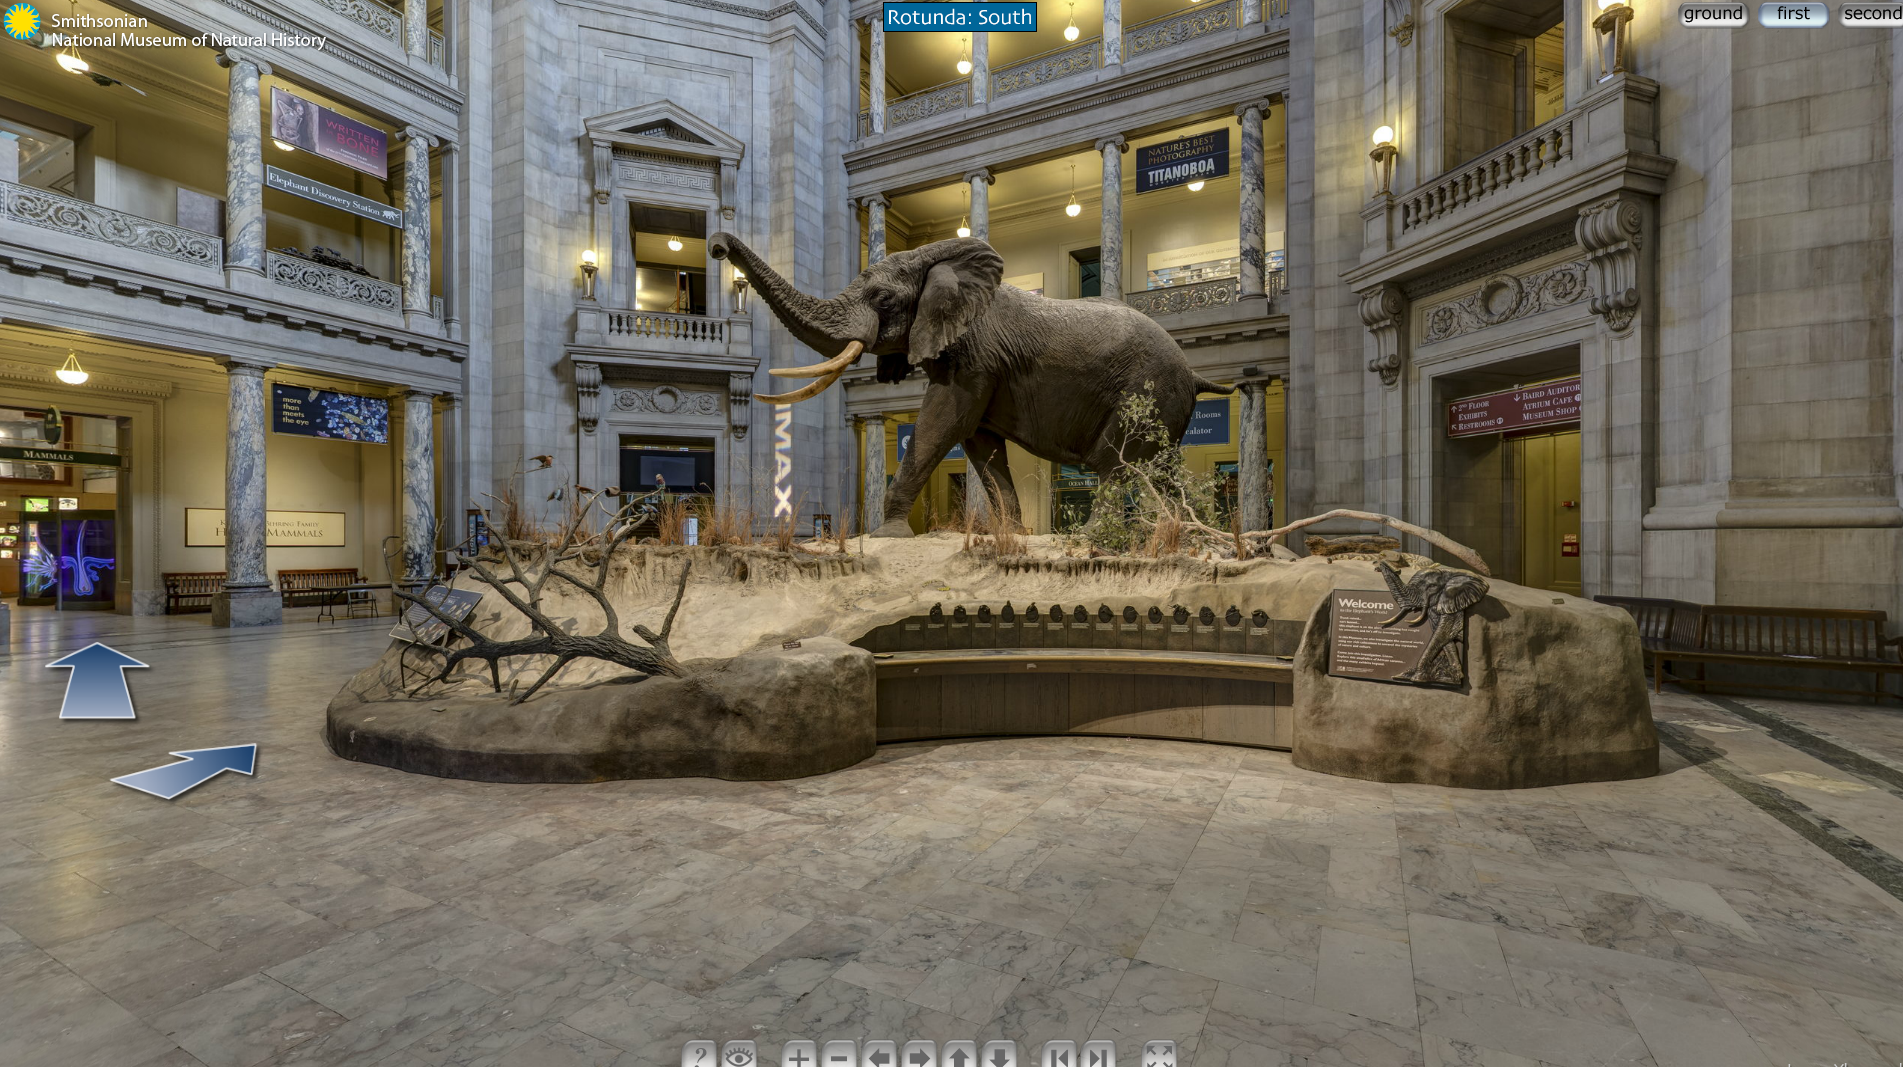 Virtual tour of the Smithsonian. Awesome. http//www.mnh